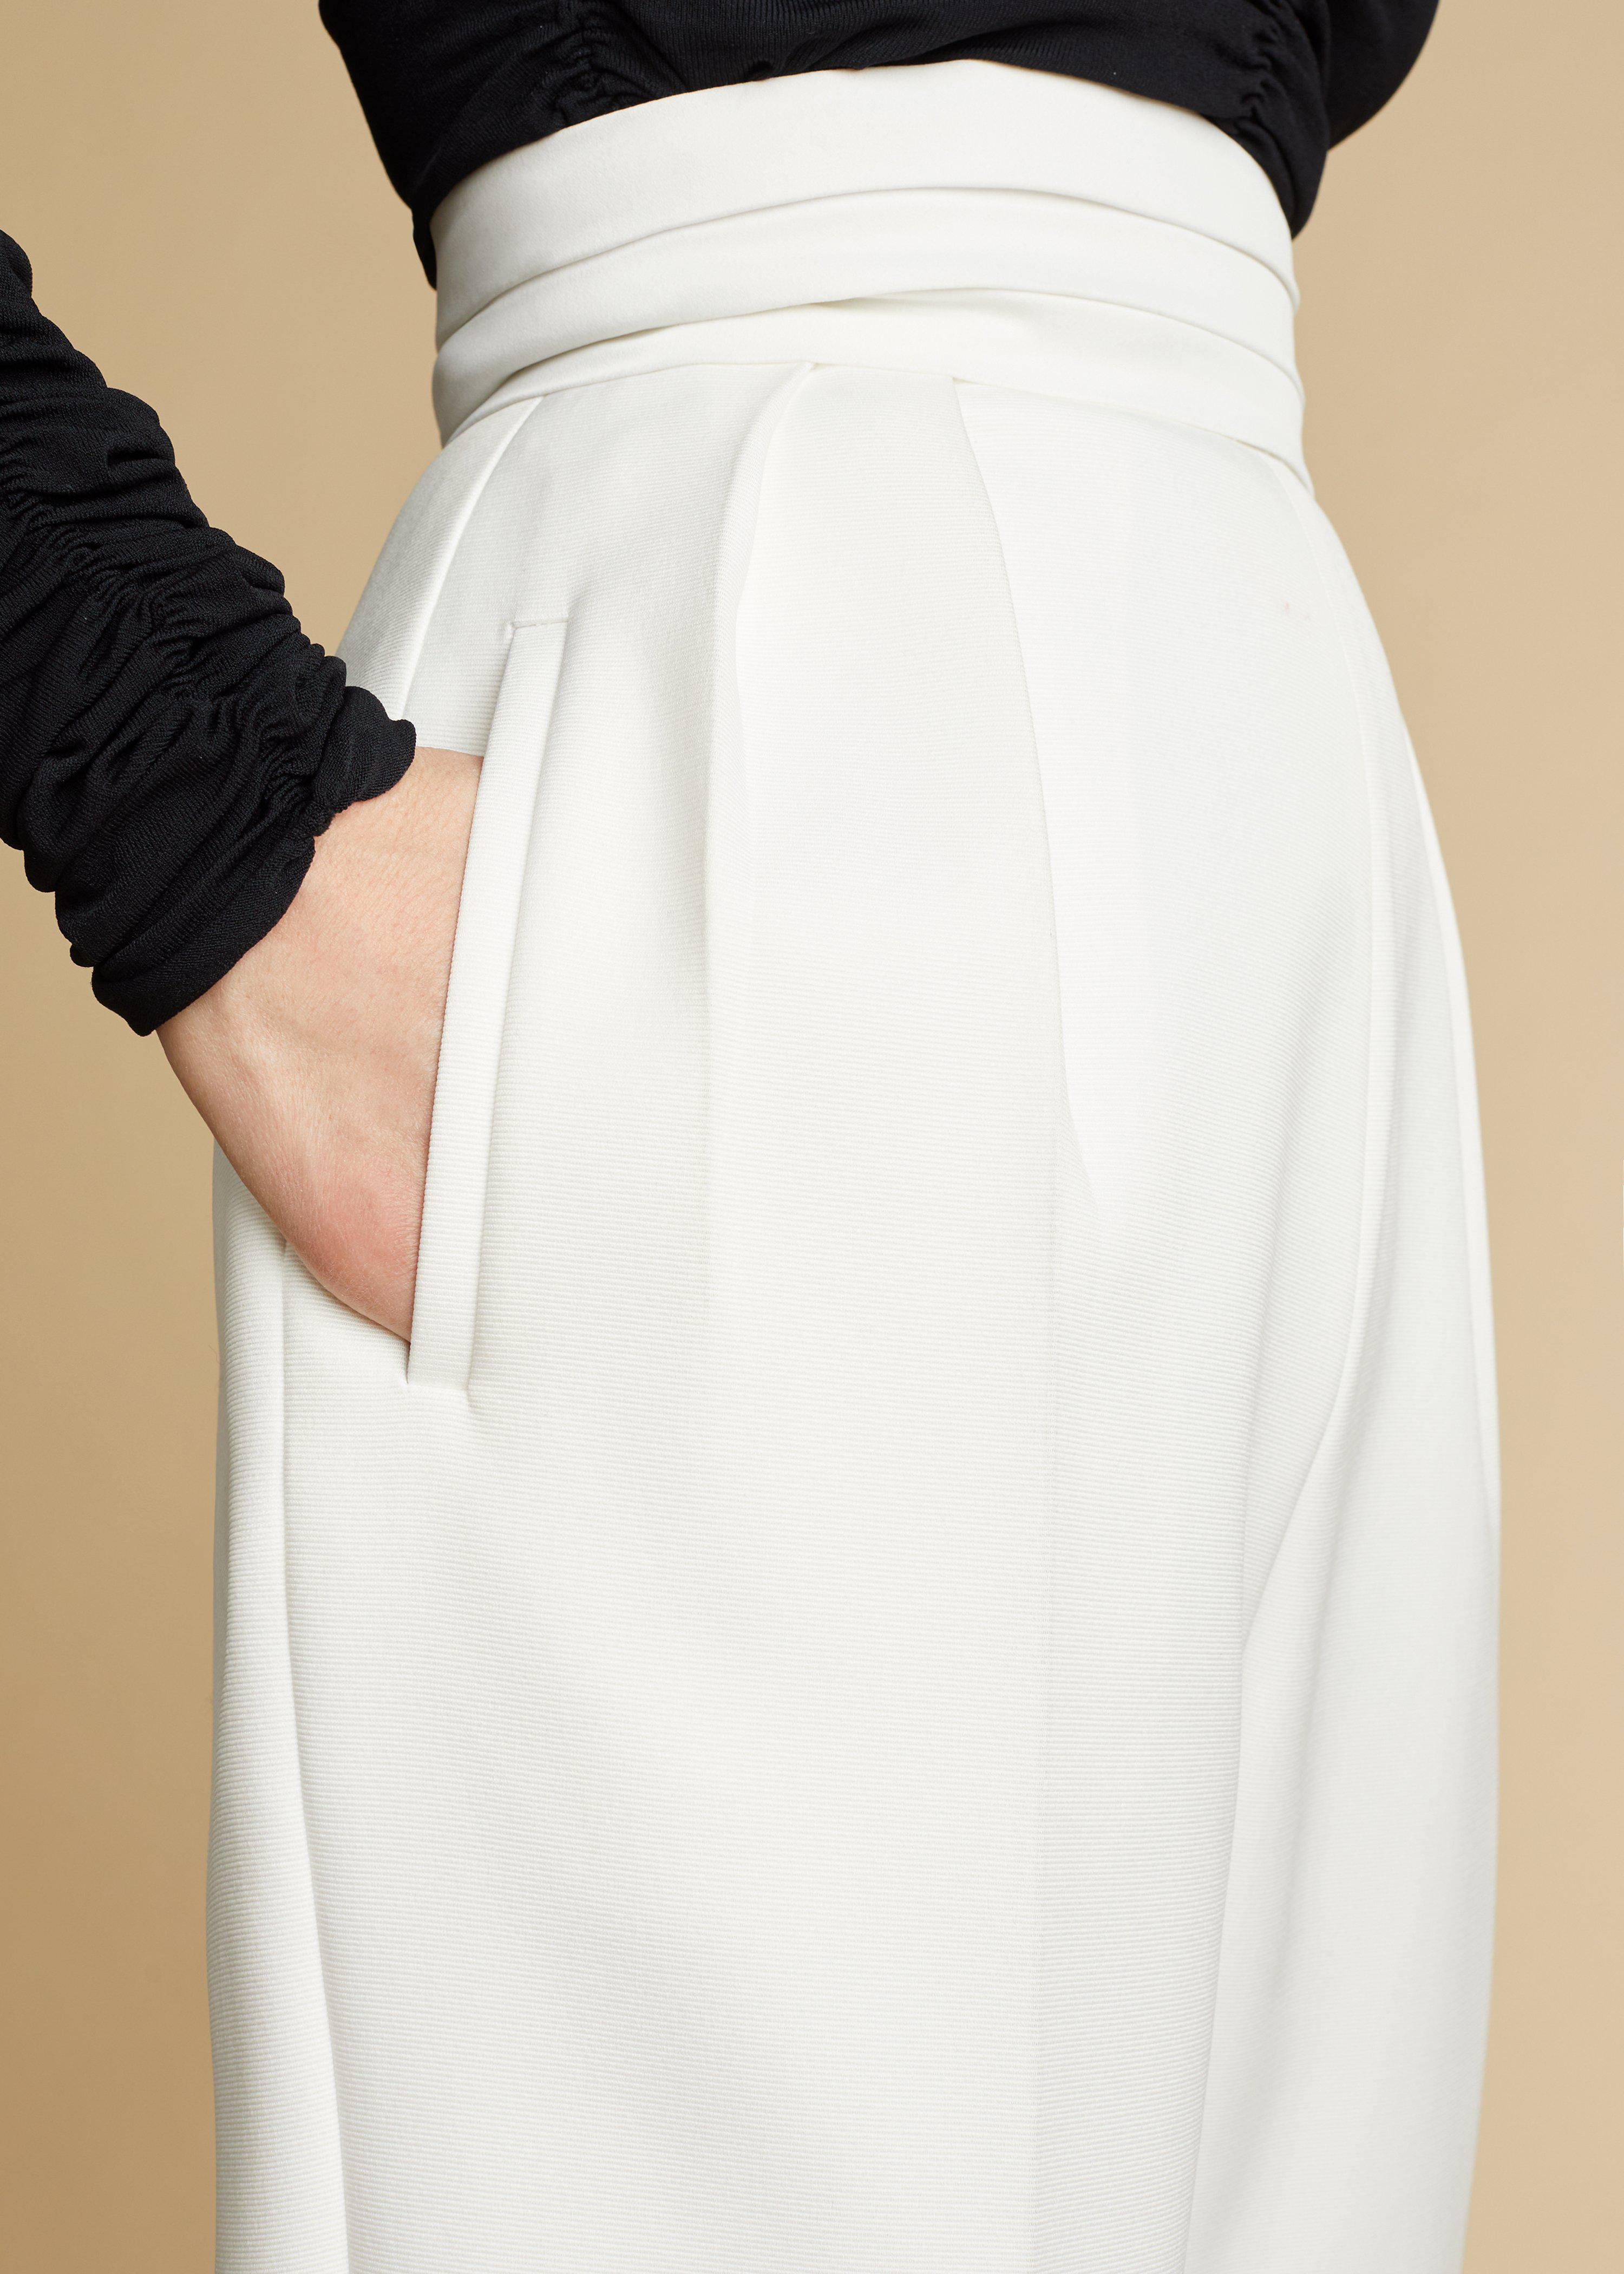 The Connelly Pant in Ivory 4